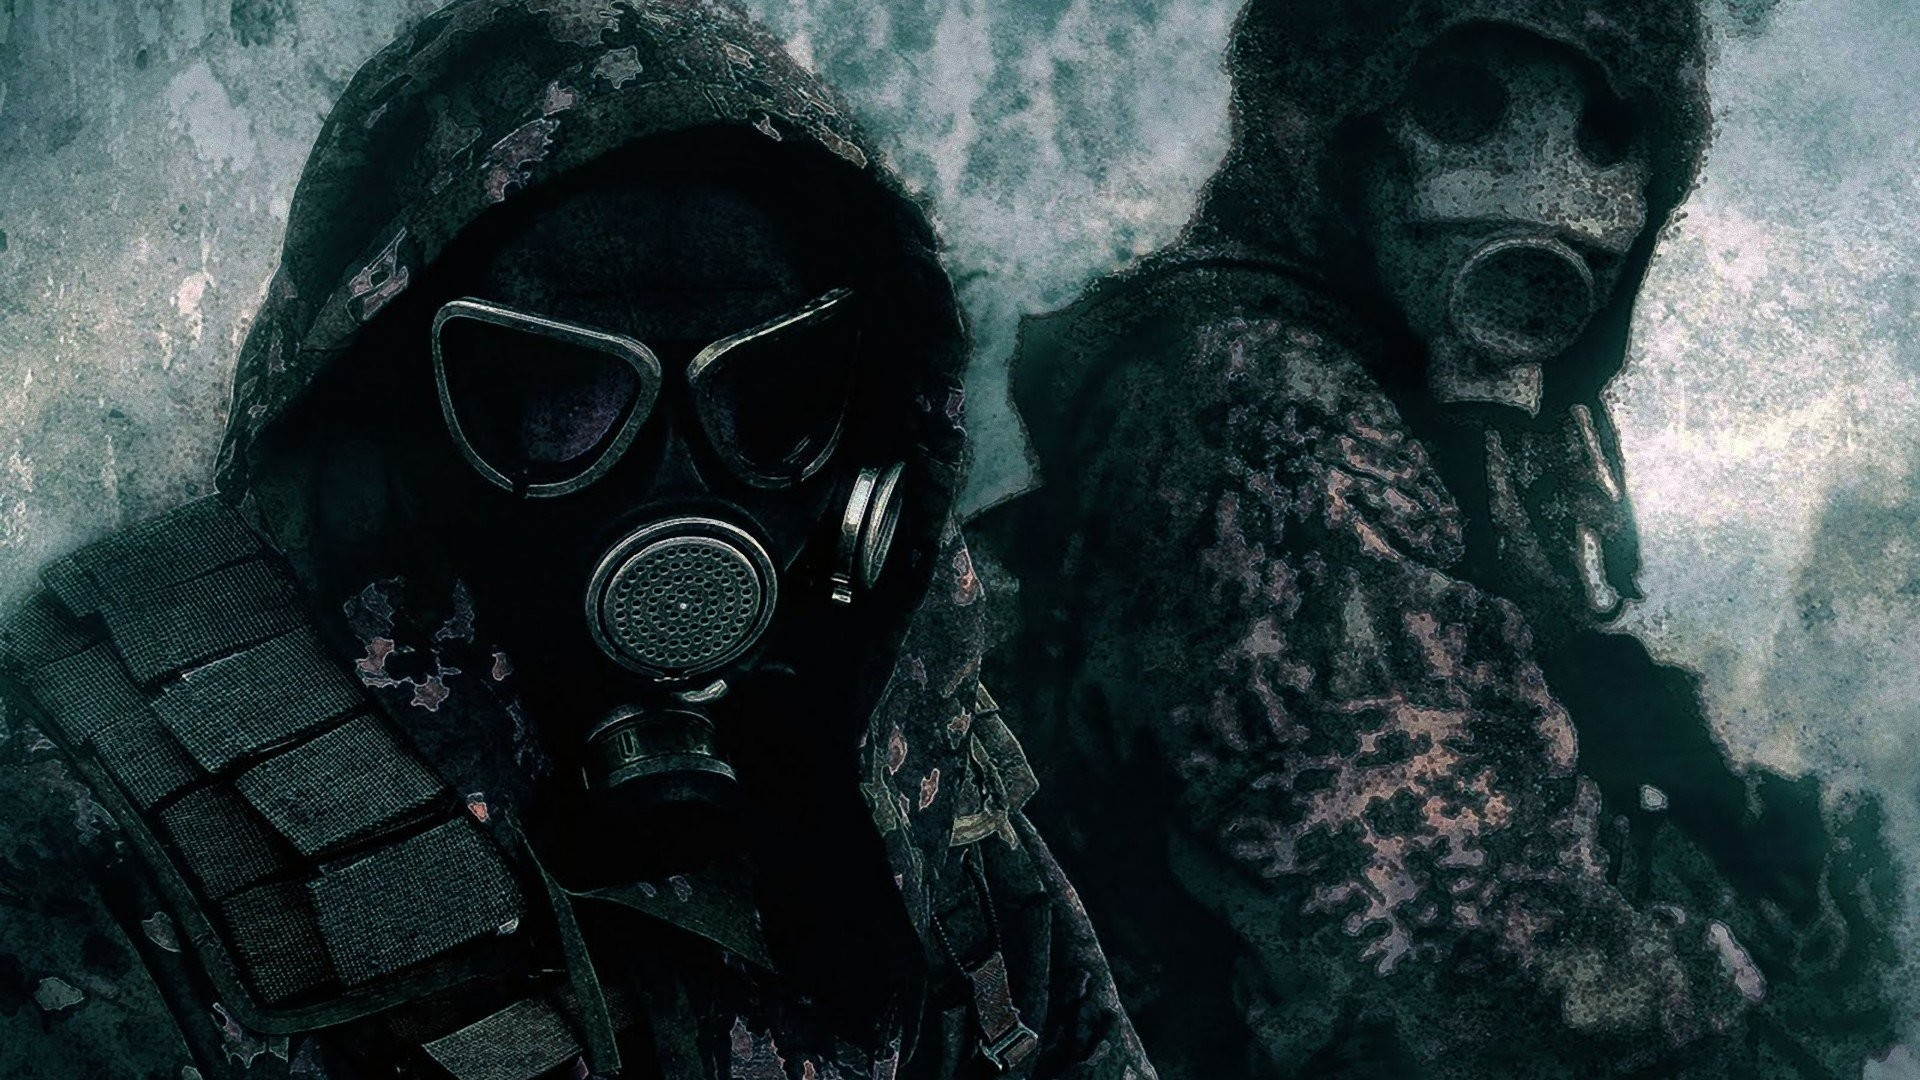 1920x1080 Gas Masks Camouflage Wallpaper At Dark Wallpapers